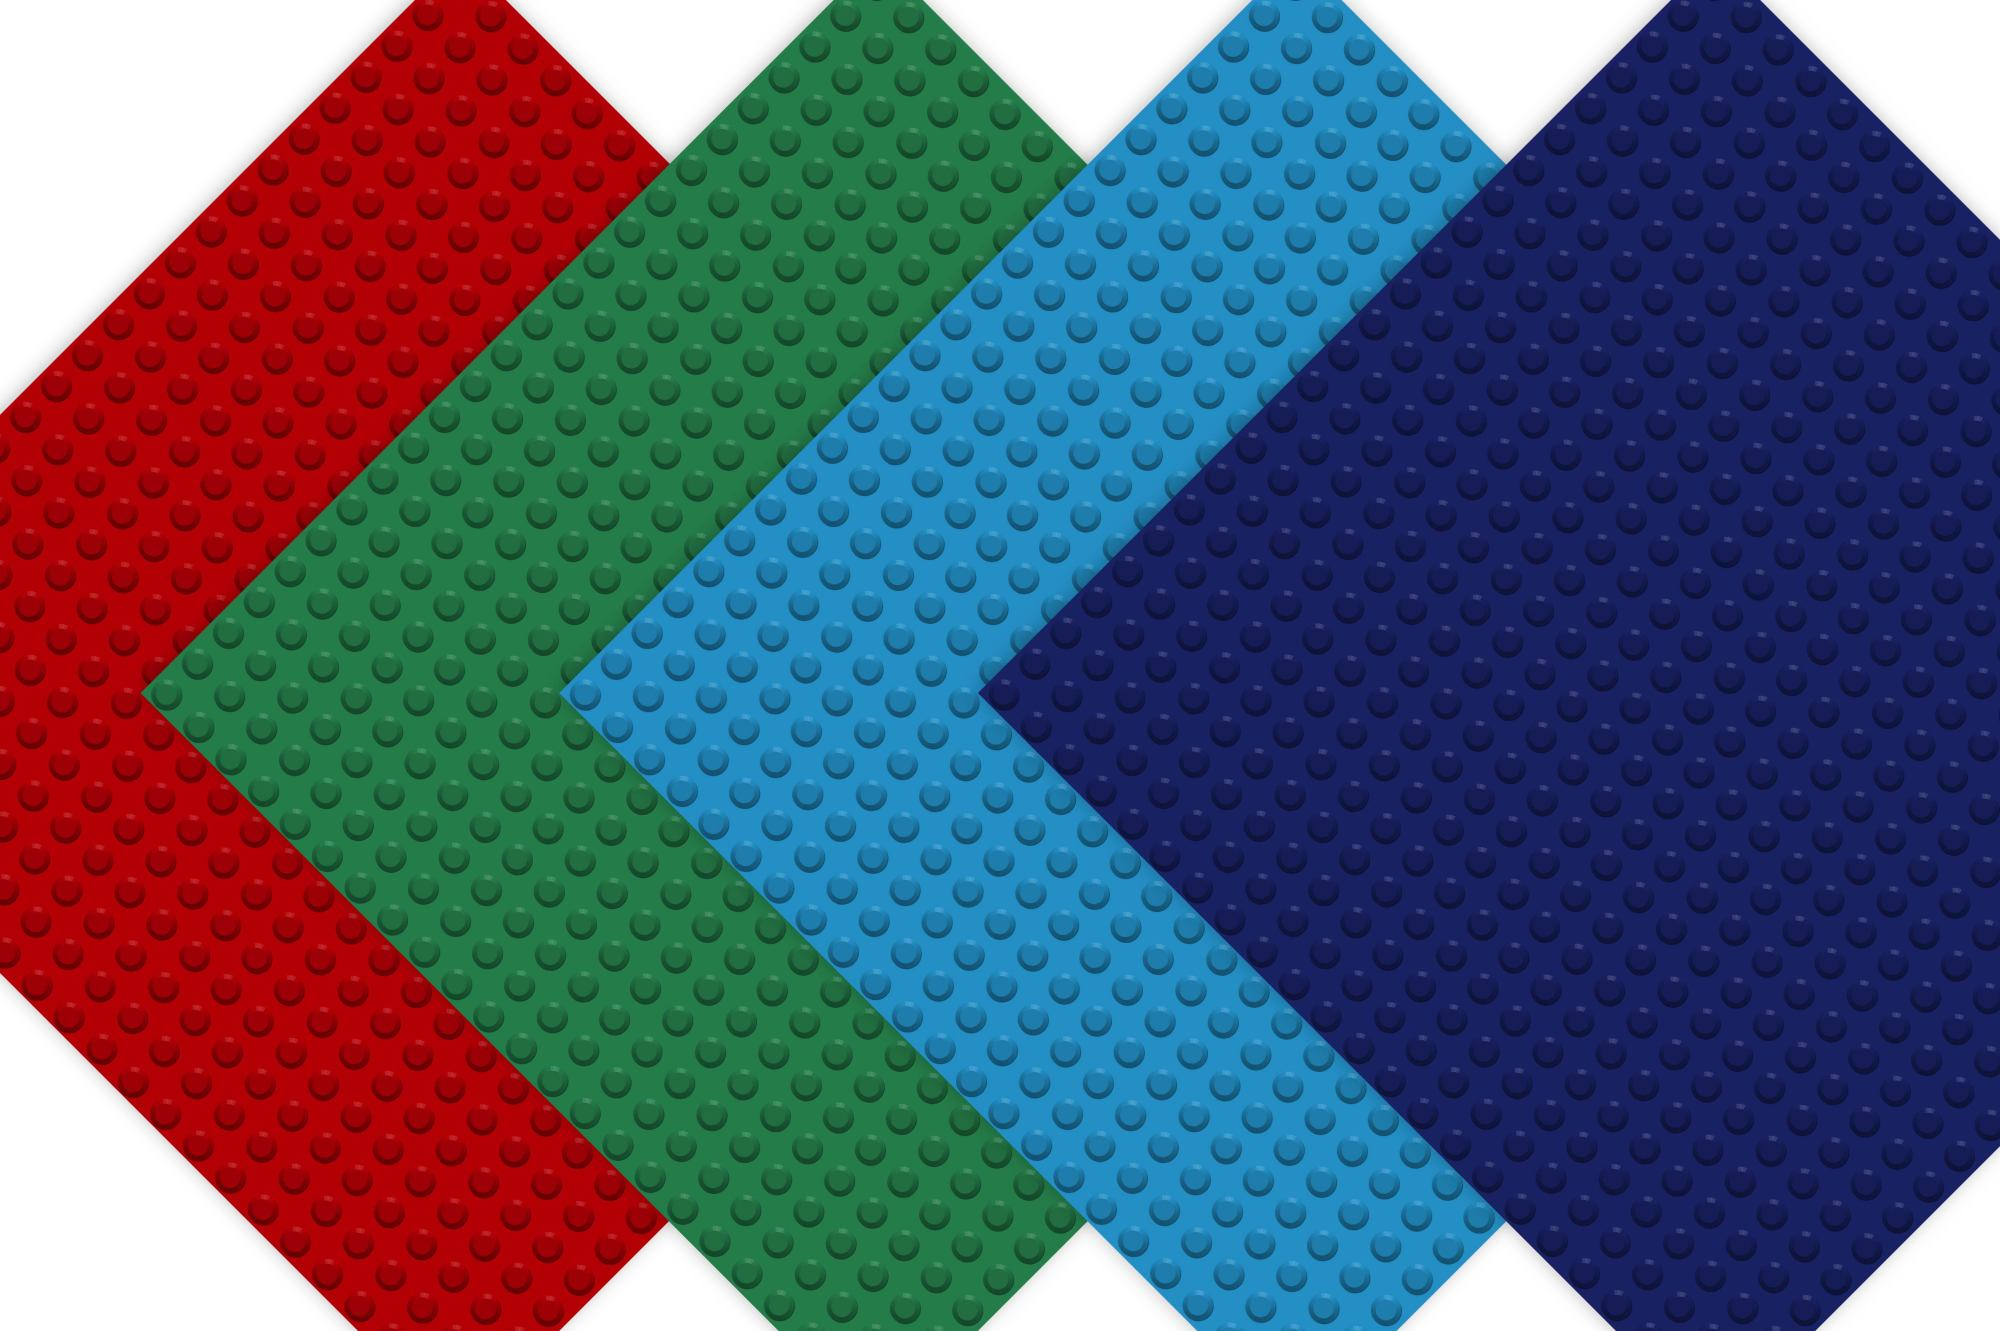 Lego Digital Paper Patterns example image 3